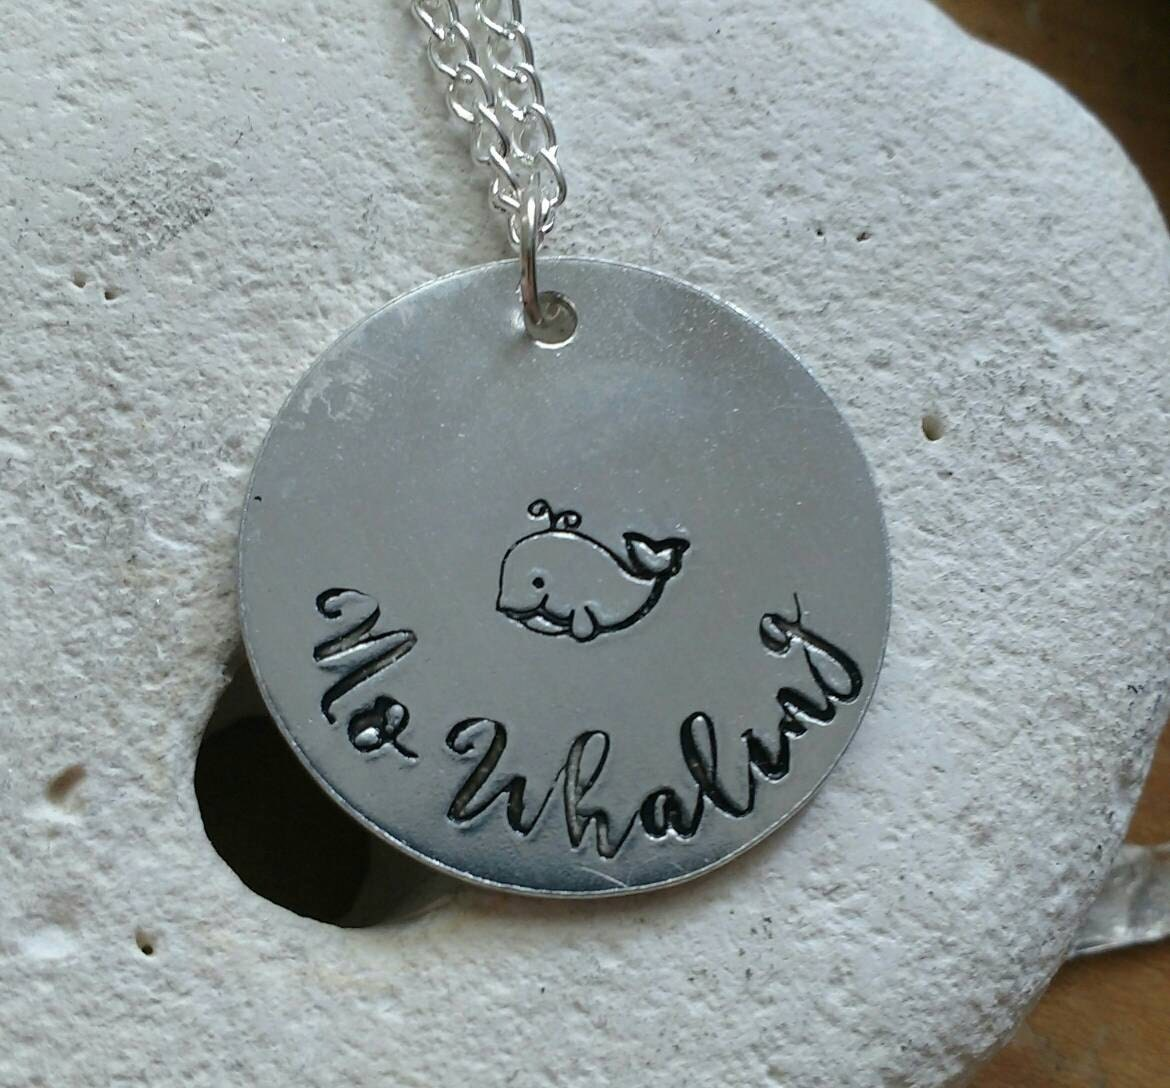 """No whaling whale necklace - vegan jewellery - vegan necklace - jewelry - animal rights jewellery - handstamped 28mm pendant on 18"""" chain"""